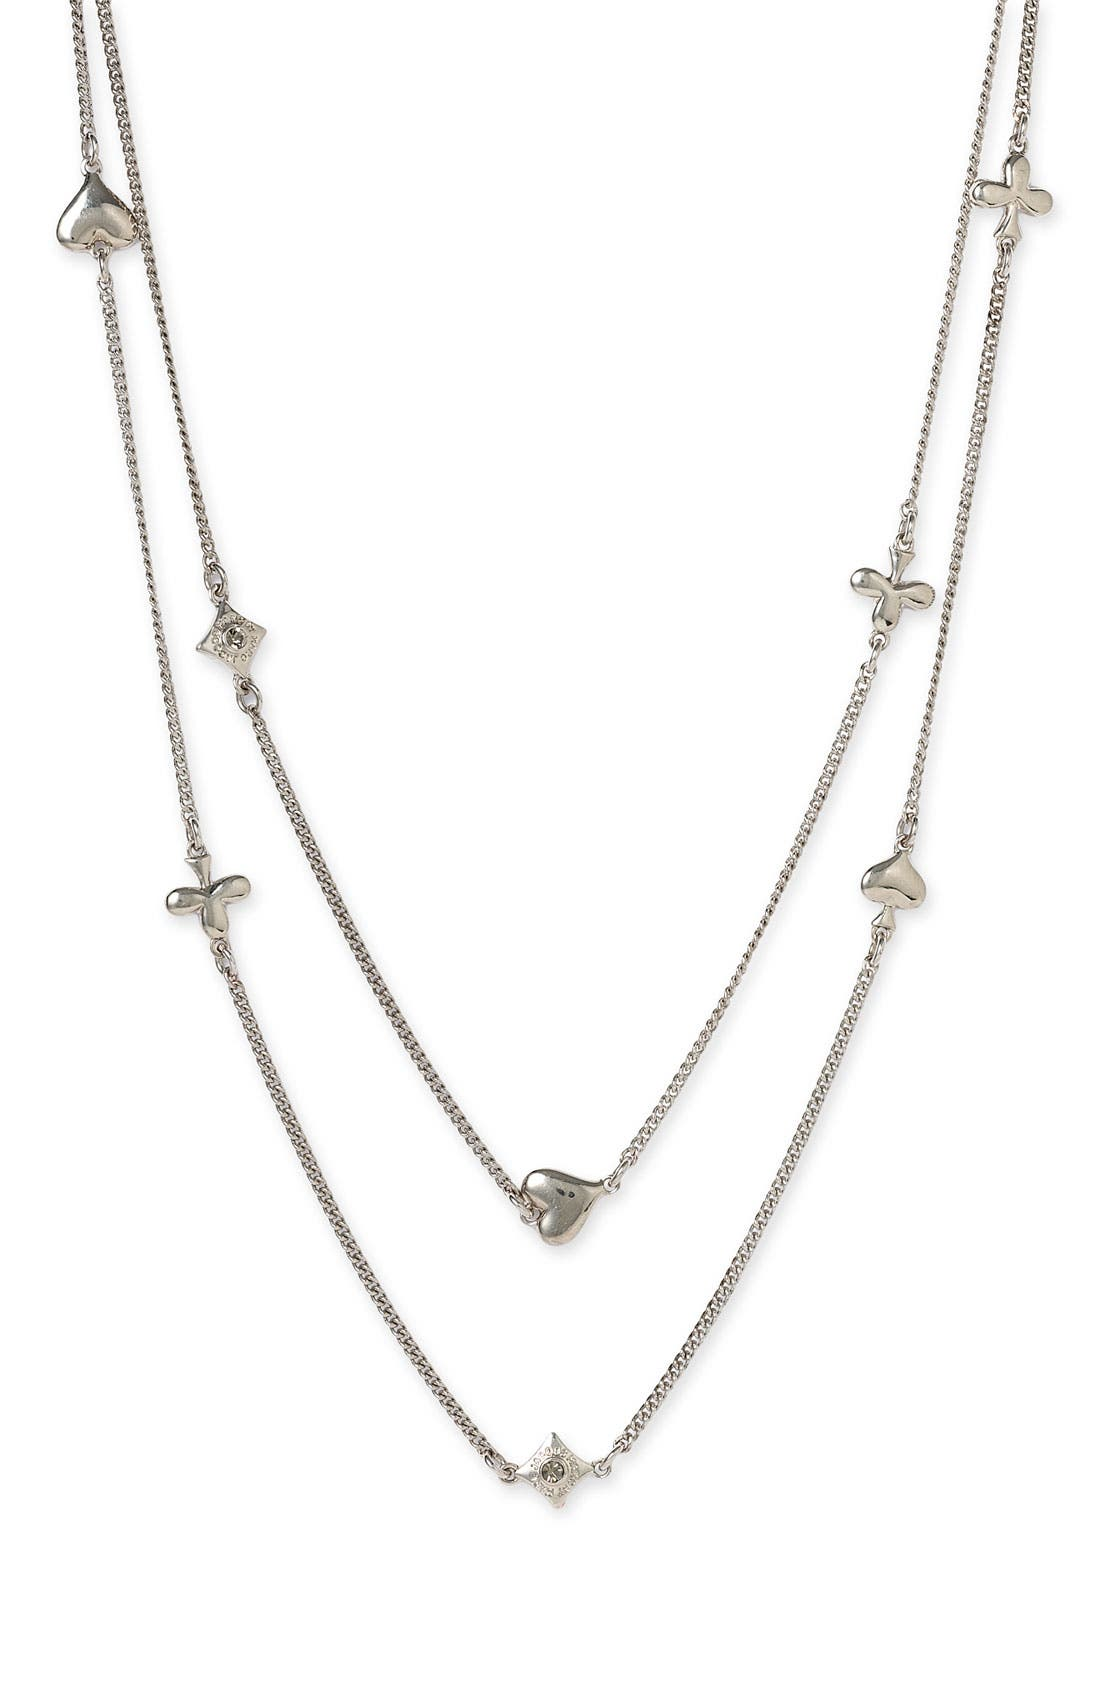 Alternate Image 1 Selected - MARC BY MARC JACOBS 'House of Cards' Long Necklace